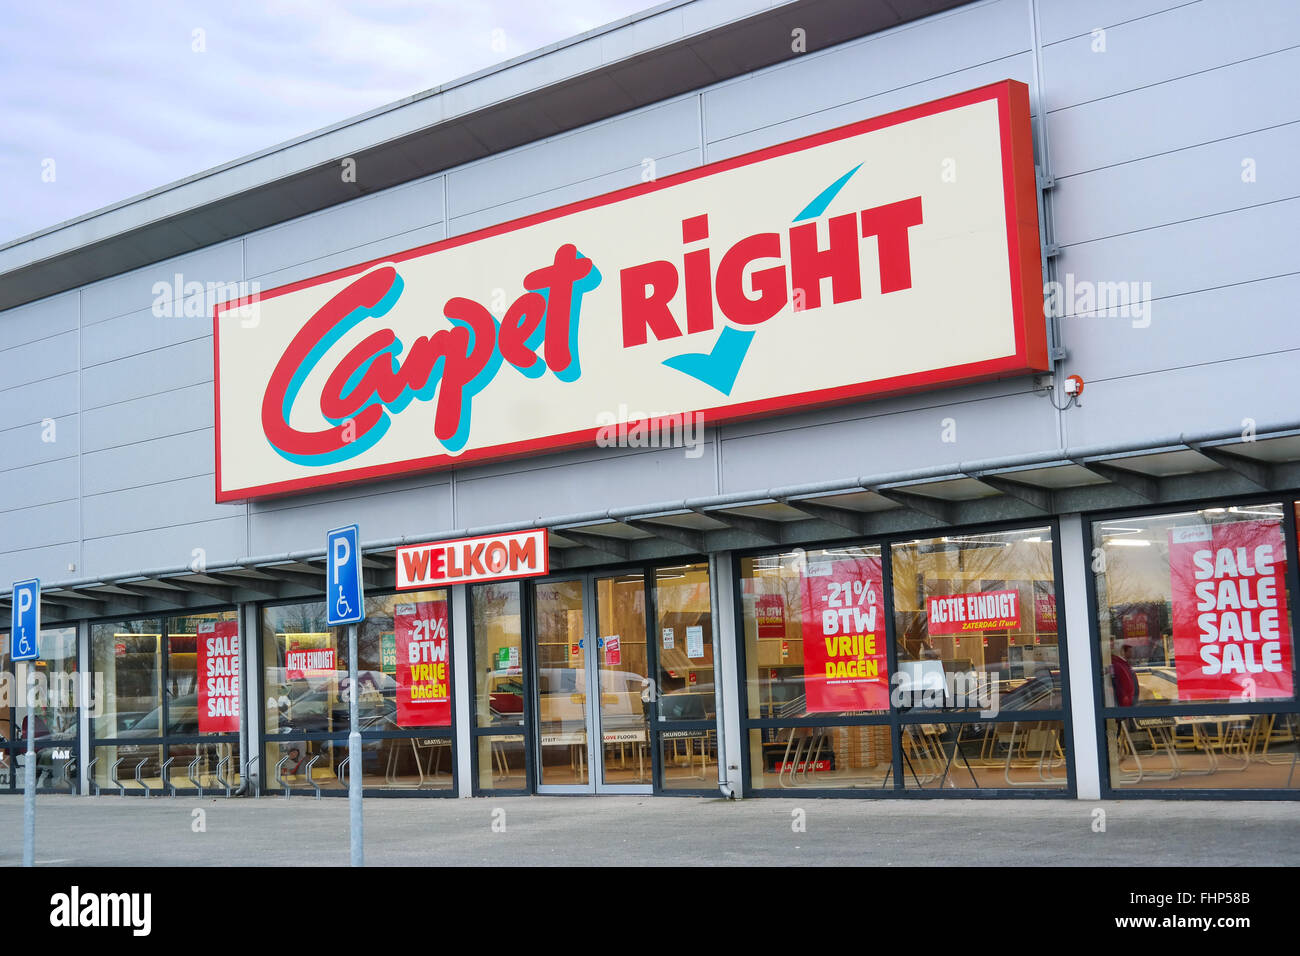 Branch of Carpetright retail chain who sells carpets, laminate flooring, vinyl flooring - Stock Image